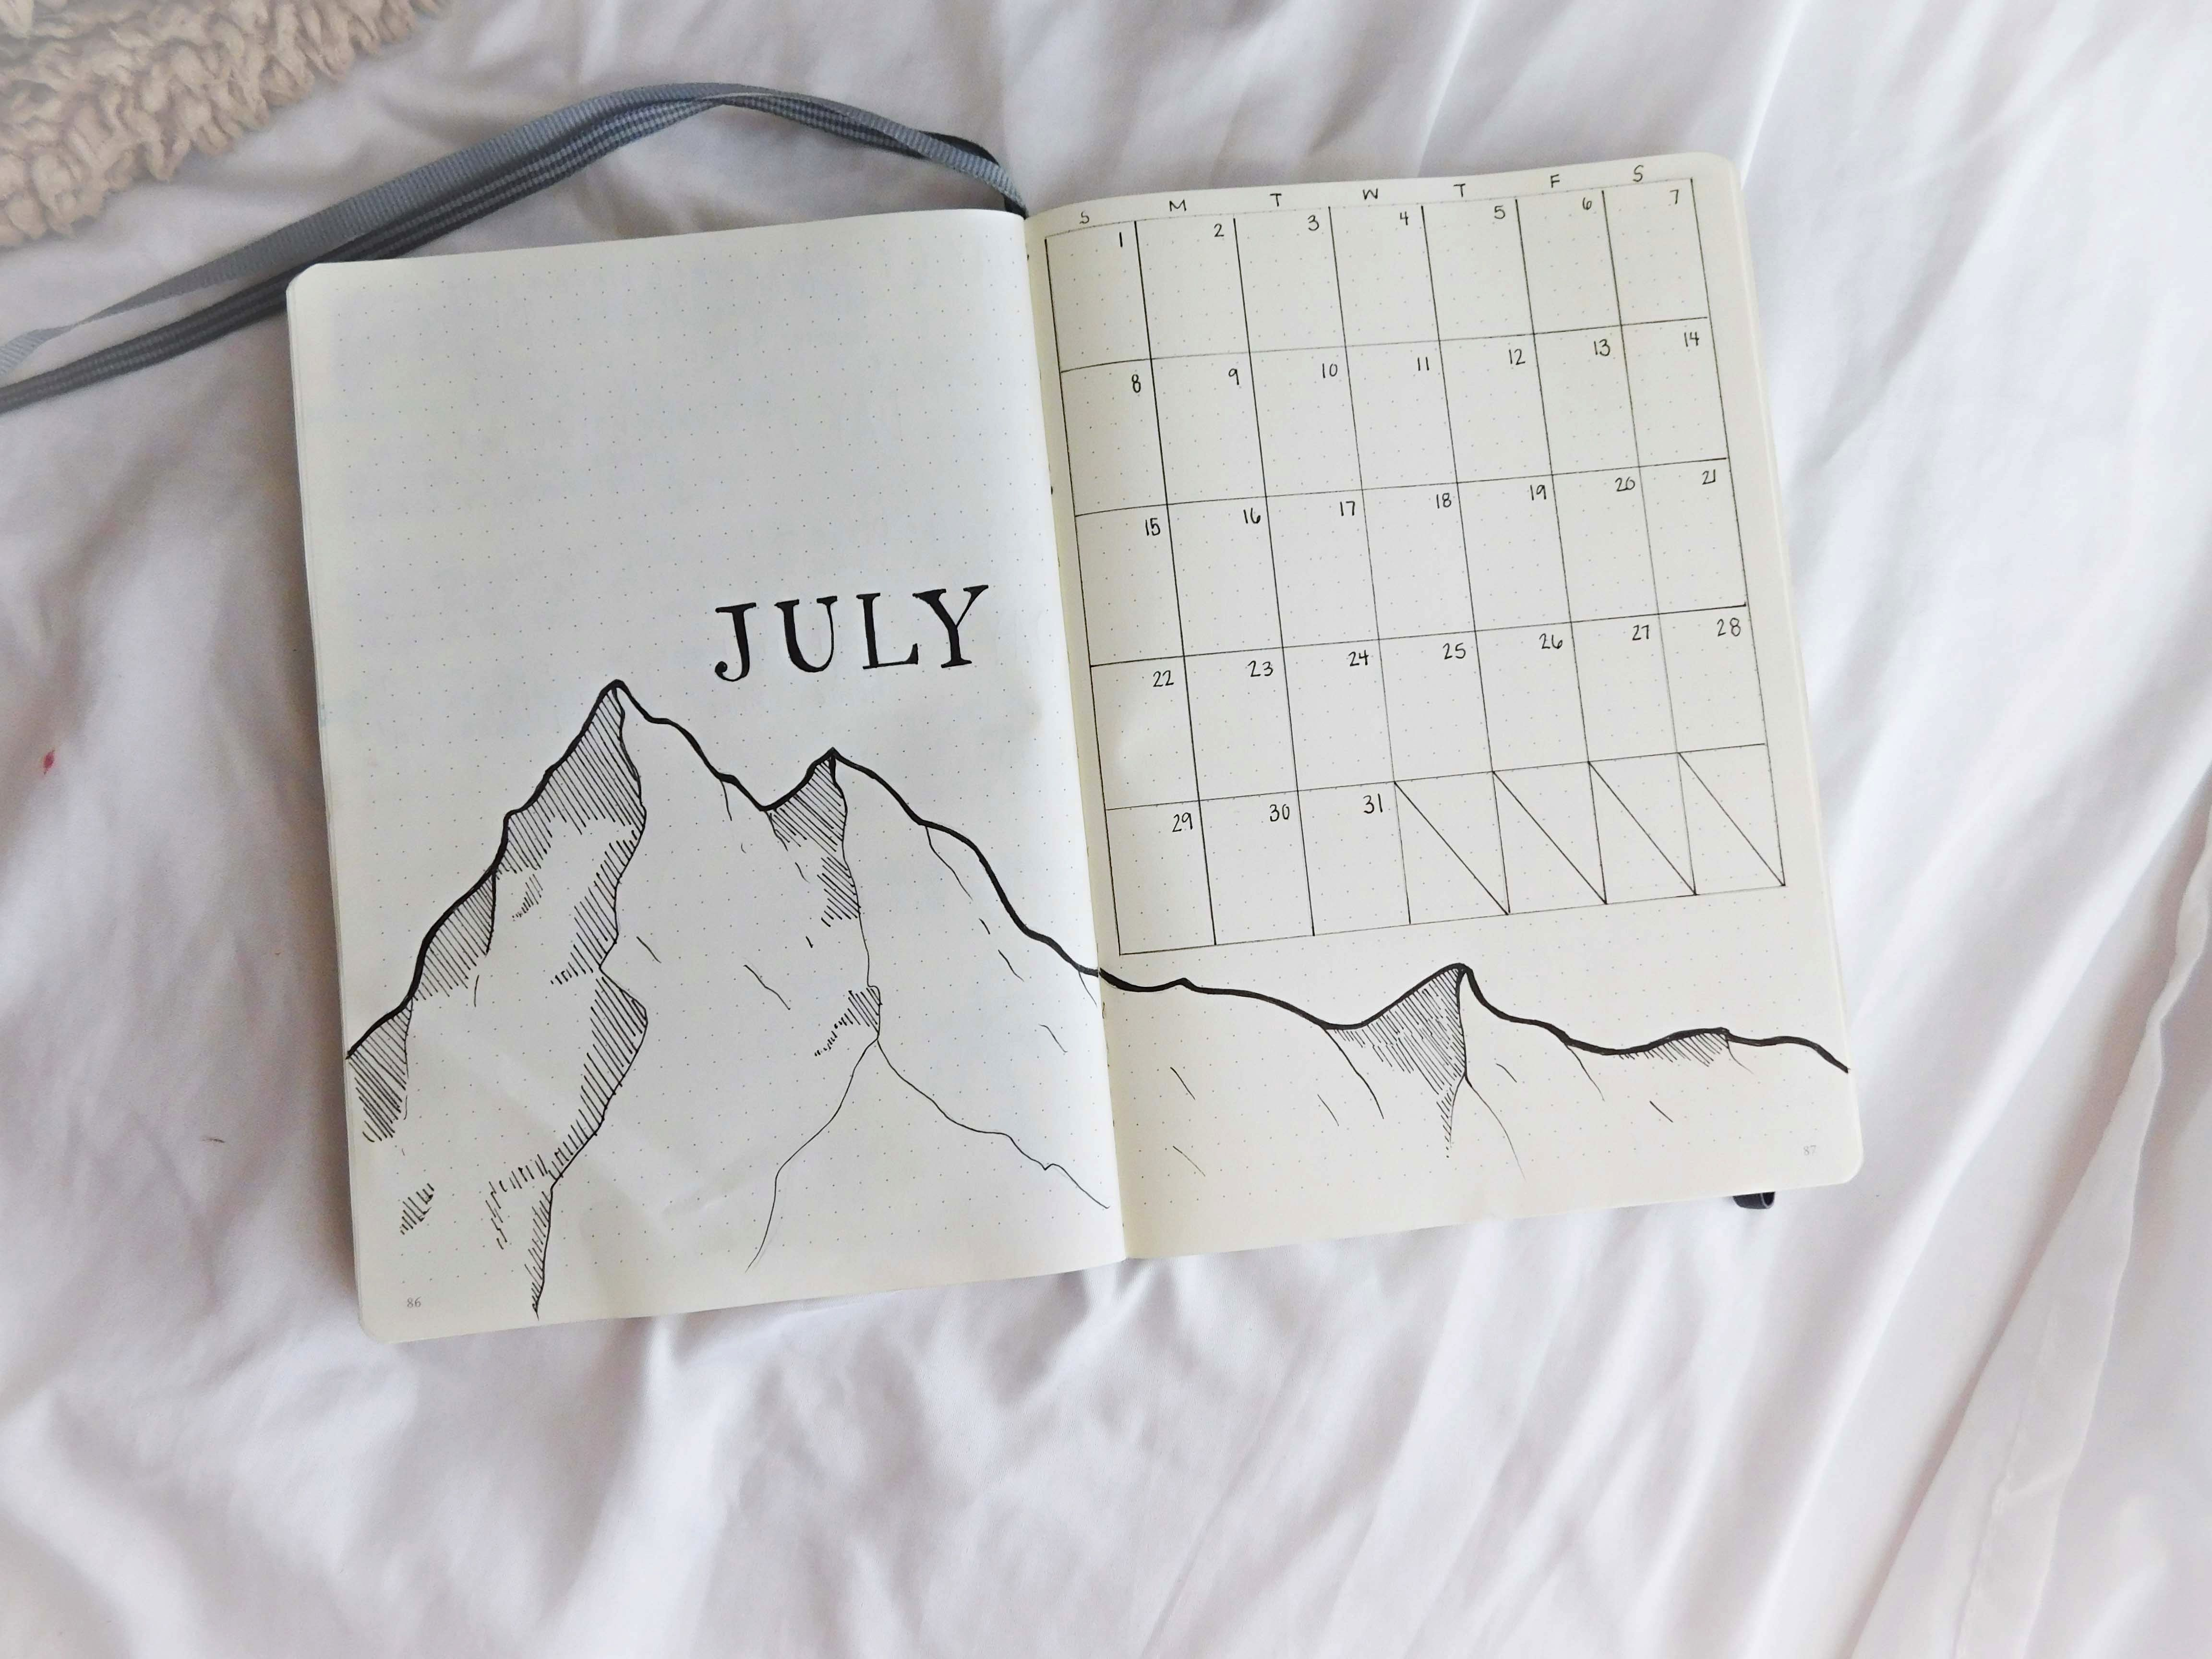 Bullet Journal, Bullet Journaling, Monthly Cover, Monthly Spread, Mountains, July #septemberbulletjournalcover Bullet Journal, Bullet Journaling, Monthly Cover, Monthly Spread, Mountains, July #novemberbulletjournalcover